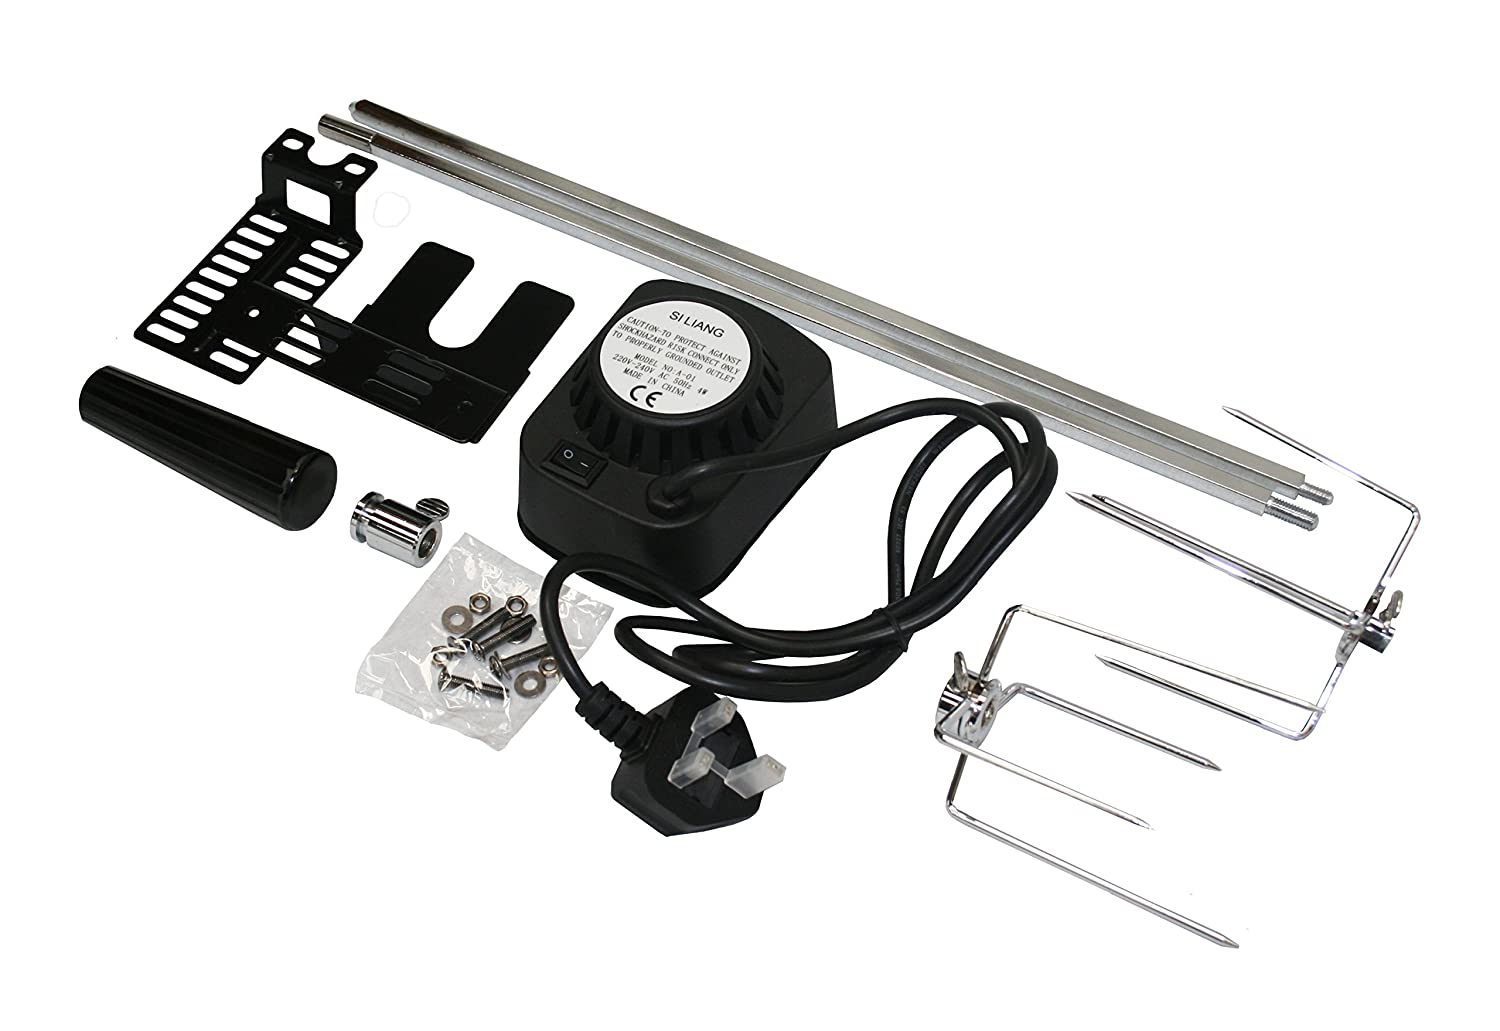 BBQ BARBECUE ROTISSERIE SPIT UNIVERSAL KIT GAS OR CHARCOAL ELECTRIC (36 Inch Skewer) (36 Inch Skewer) SunshineBBQs Ltd